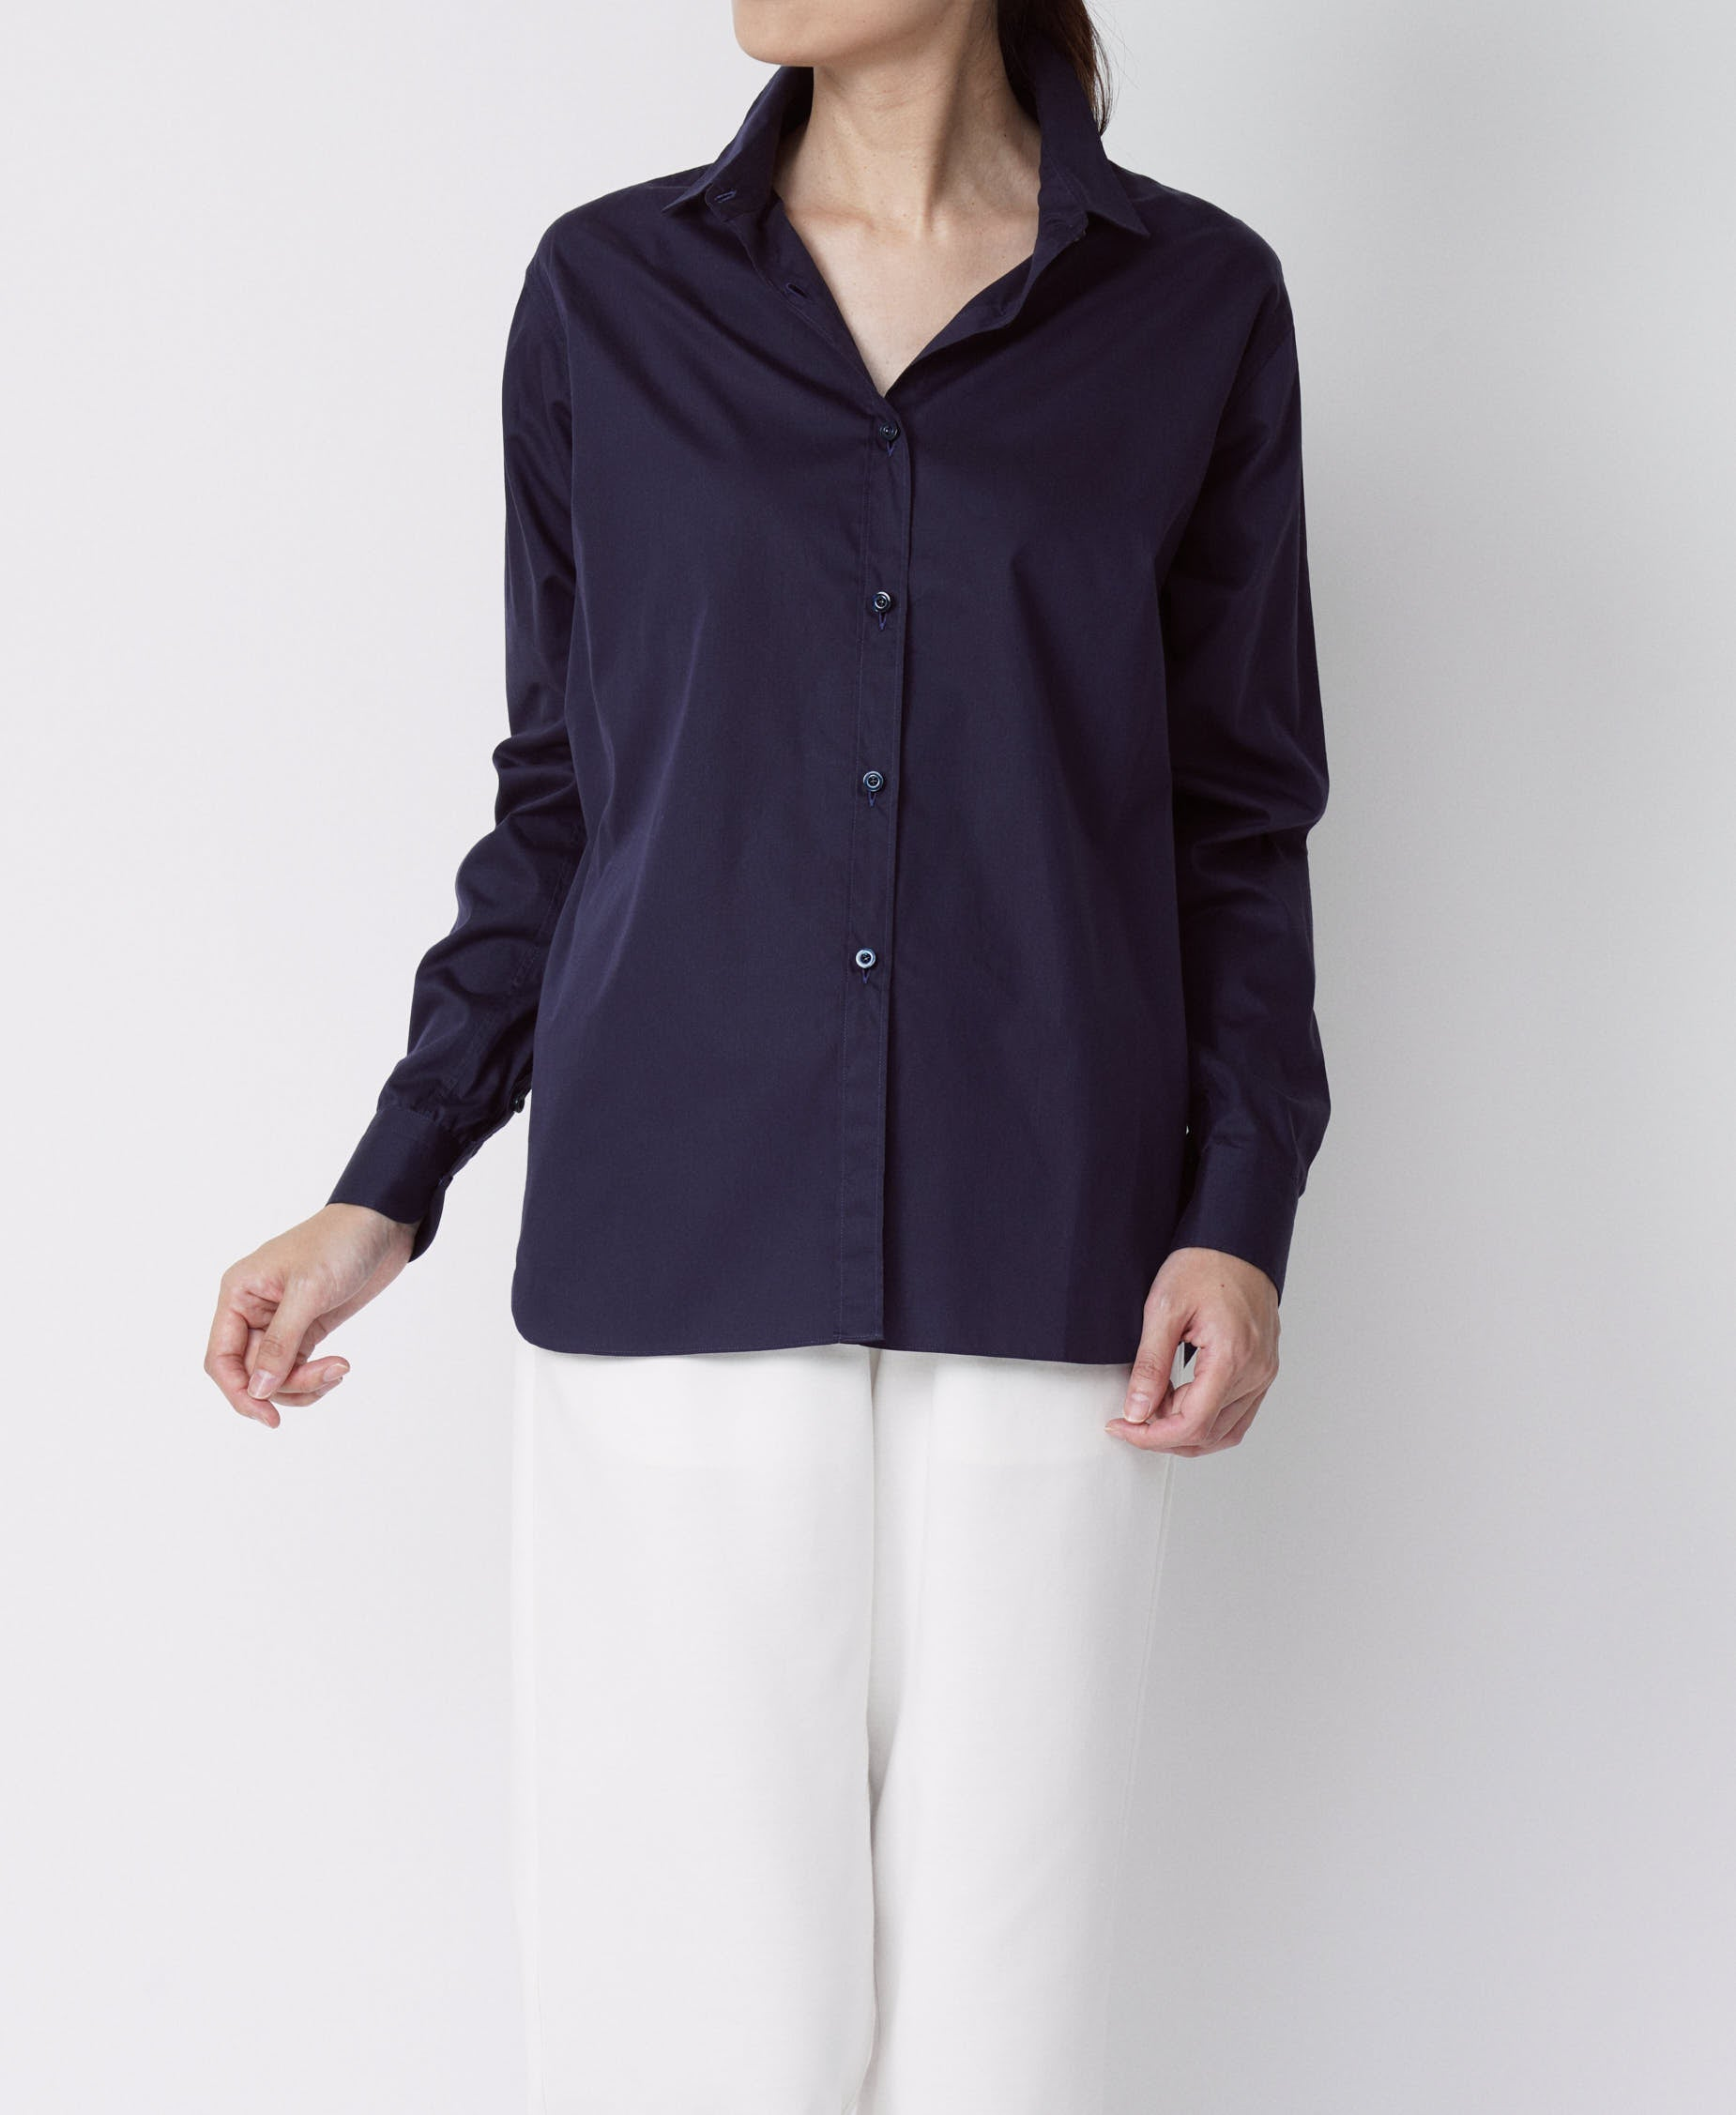 TL-3202 / Cotton Carze New Regular Shirt